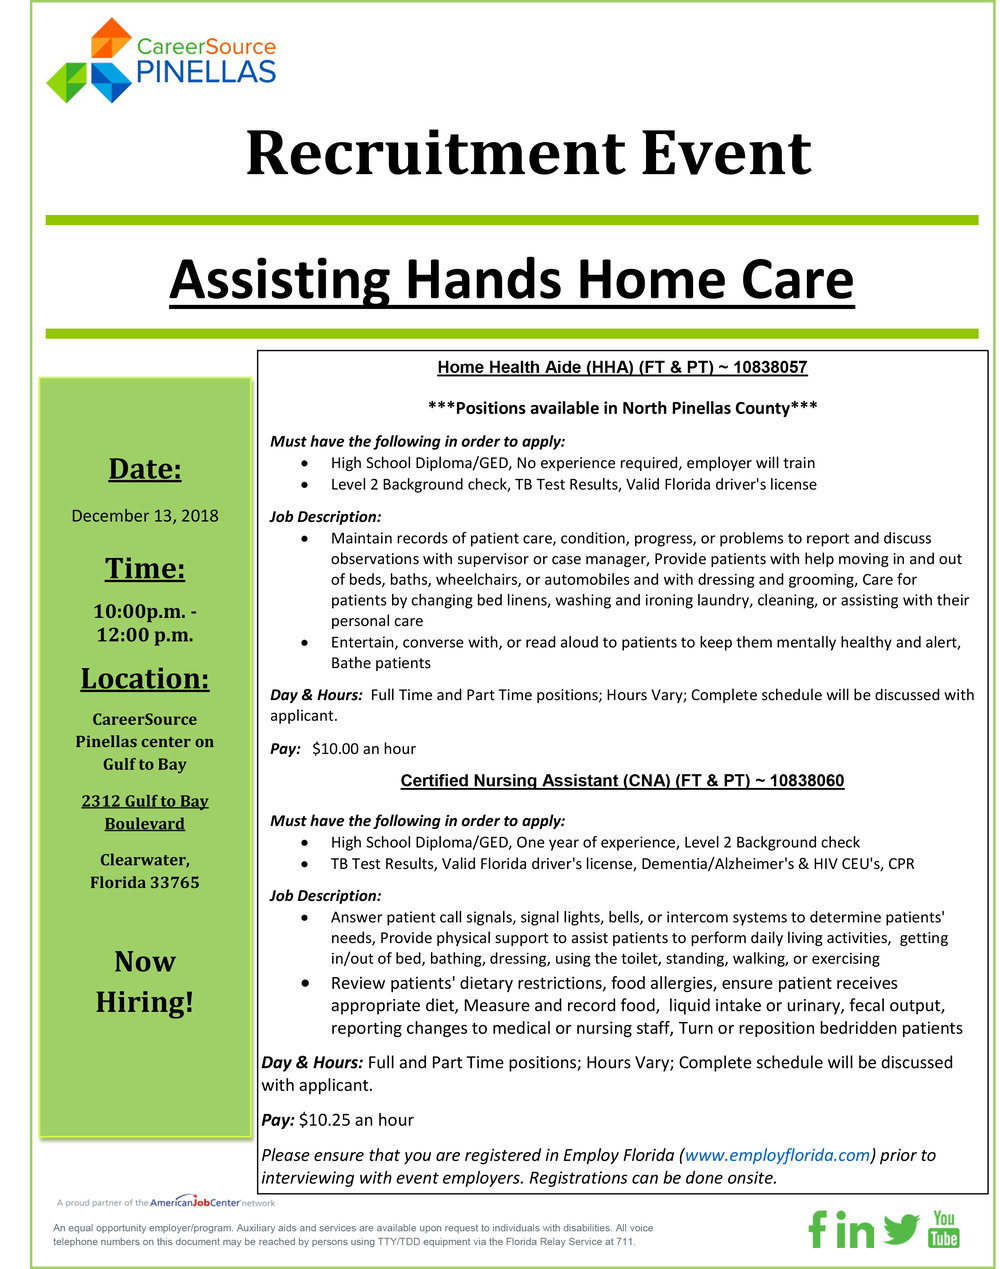 Assisting Hands Home Care 12-13-2018.jpg